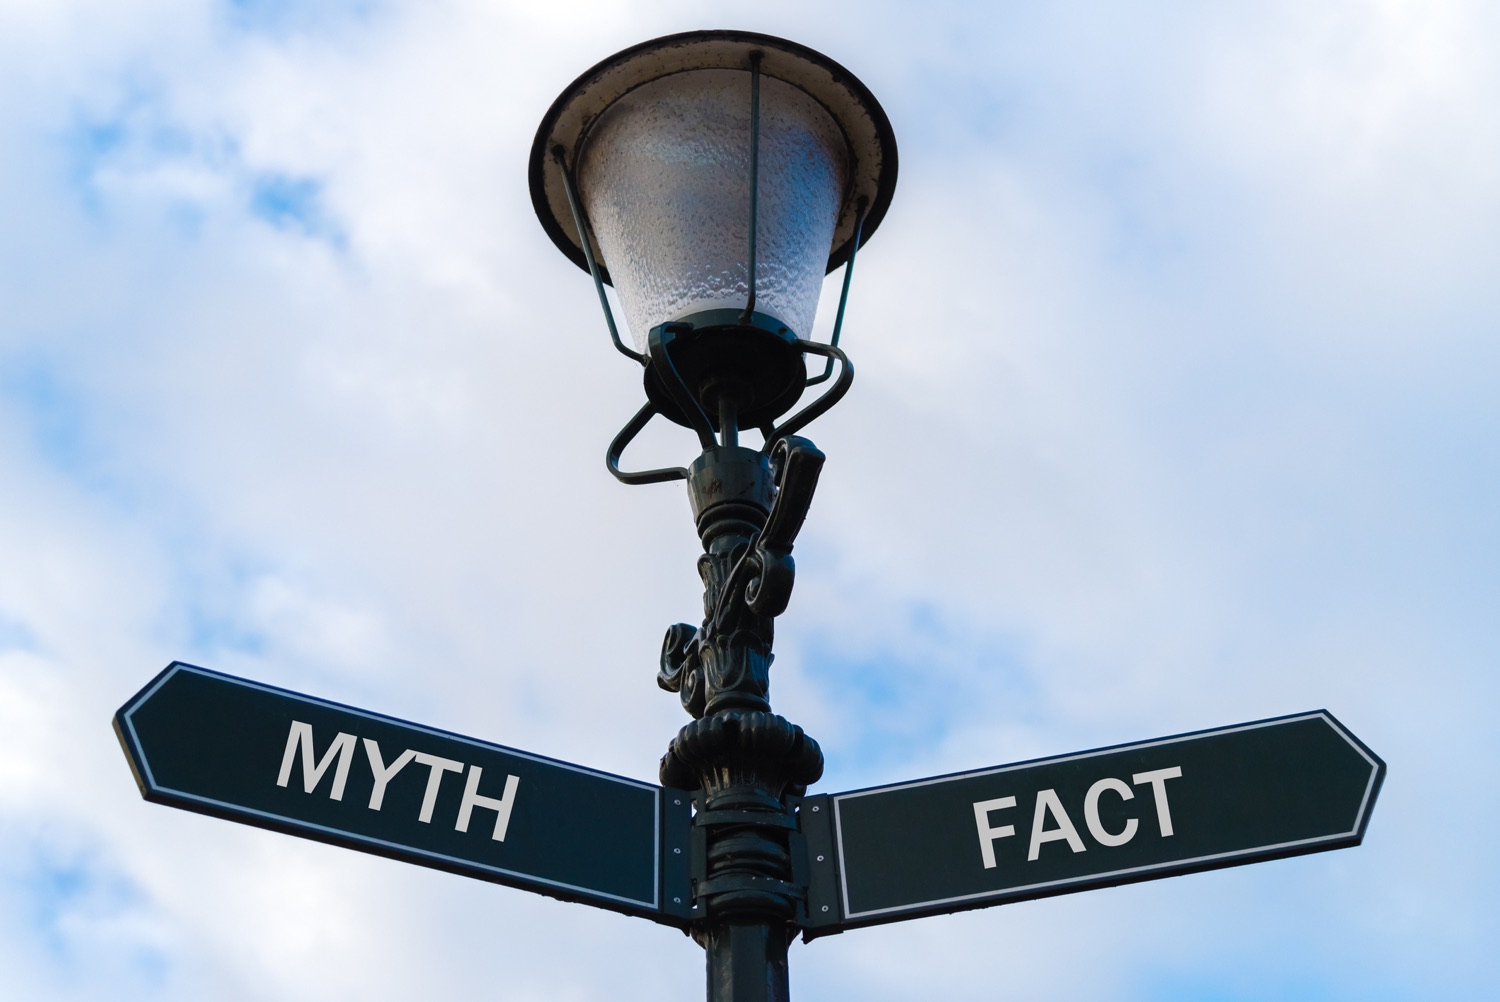 Myth versus Fact directional signs on guidepost